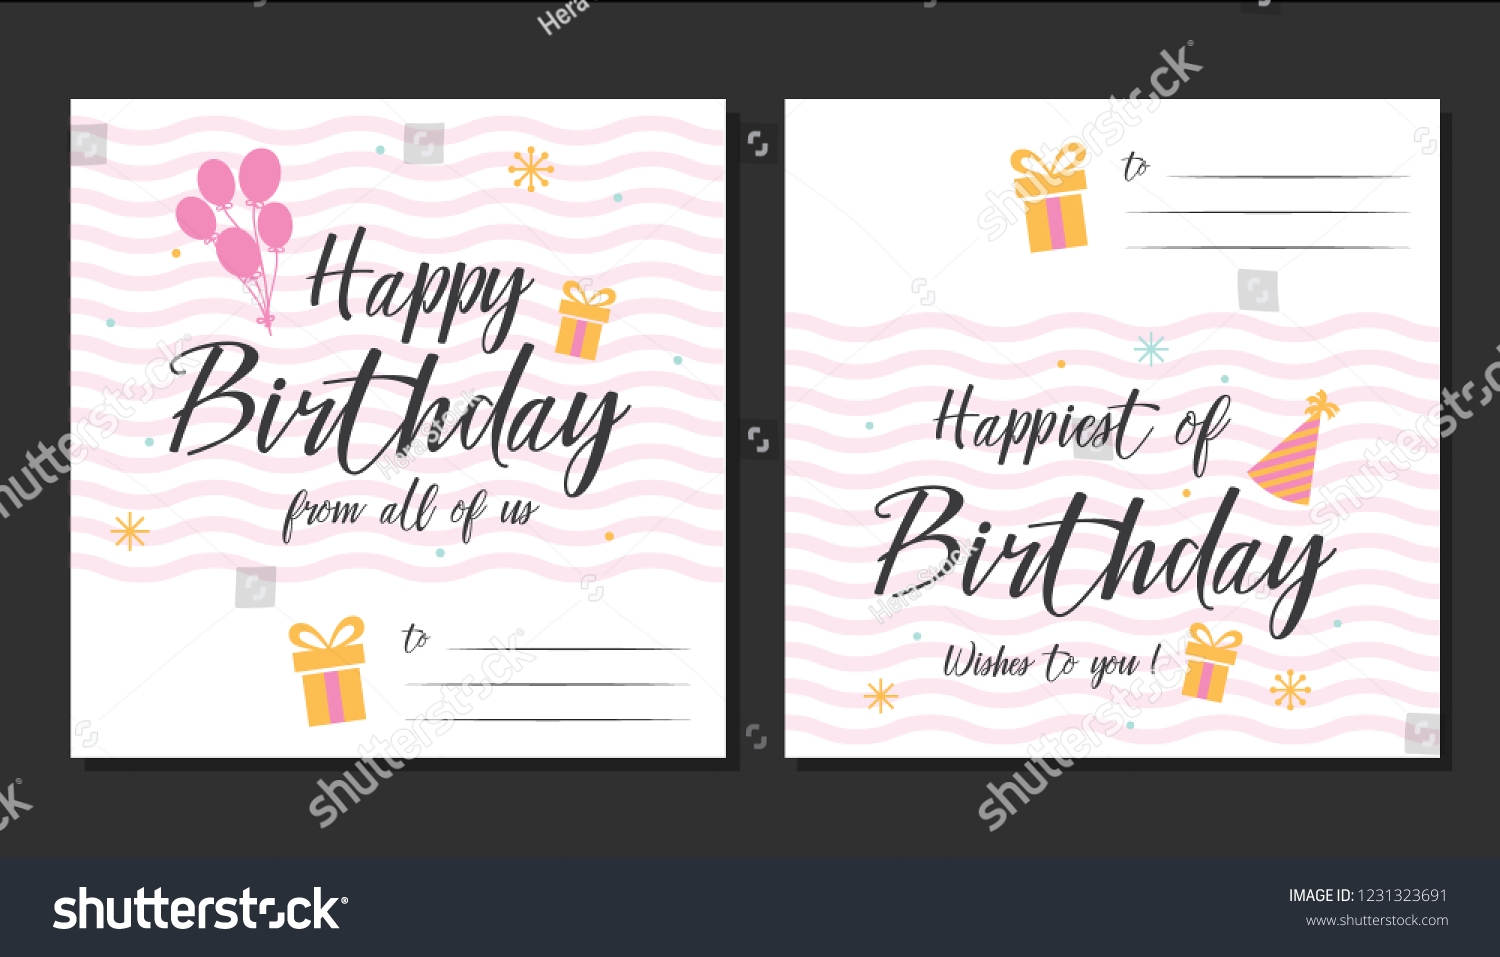 Happy Birthday Greeting Cards Designs For Prints Party Invitations Posters